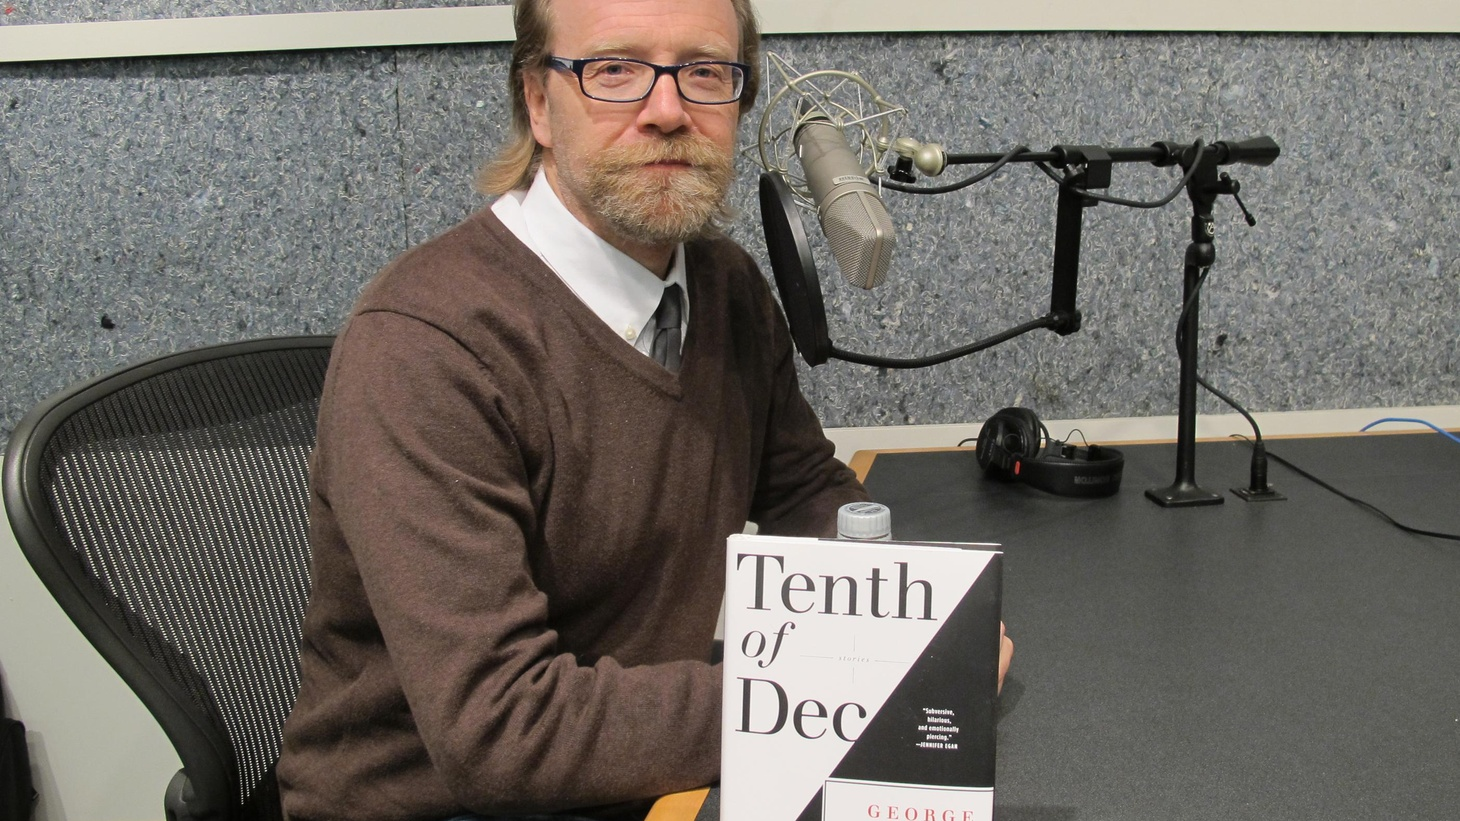 In this second interview, George Saunders delves further into the dark-comic twists and turns of his recent short story collection. (Part 2 of 2)